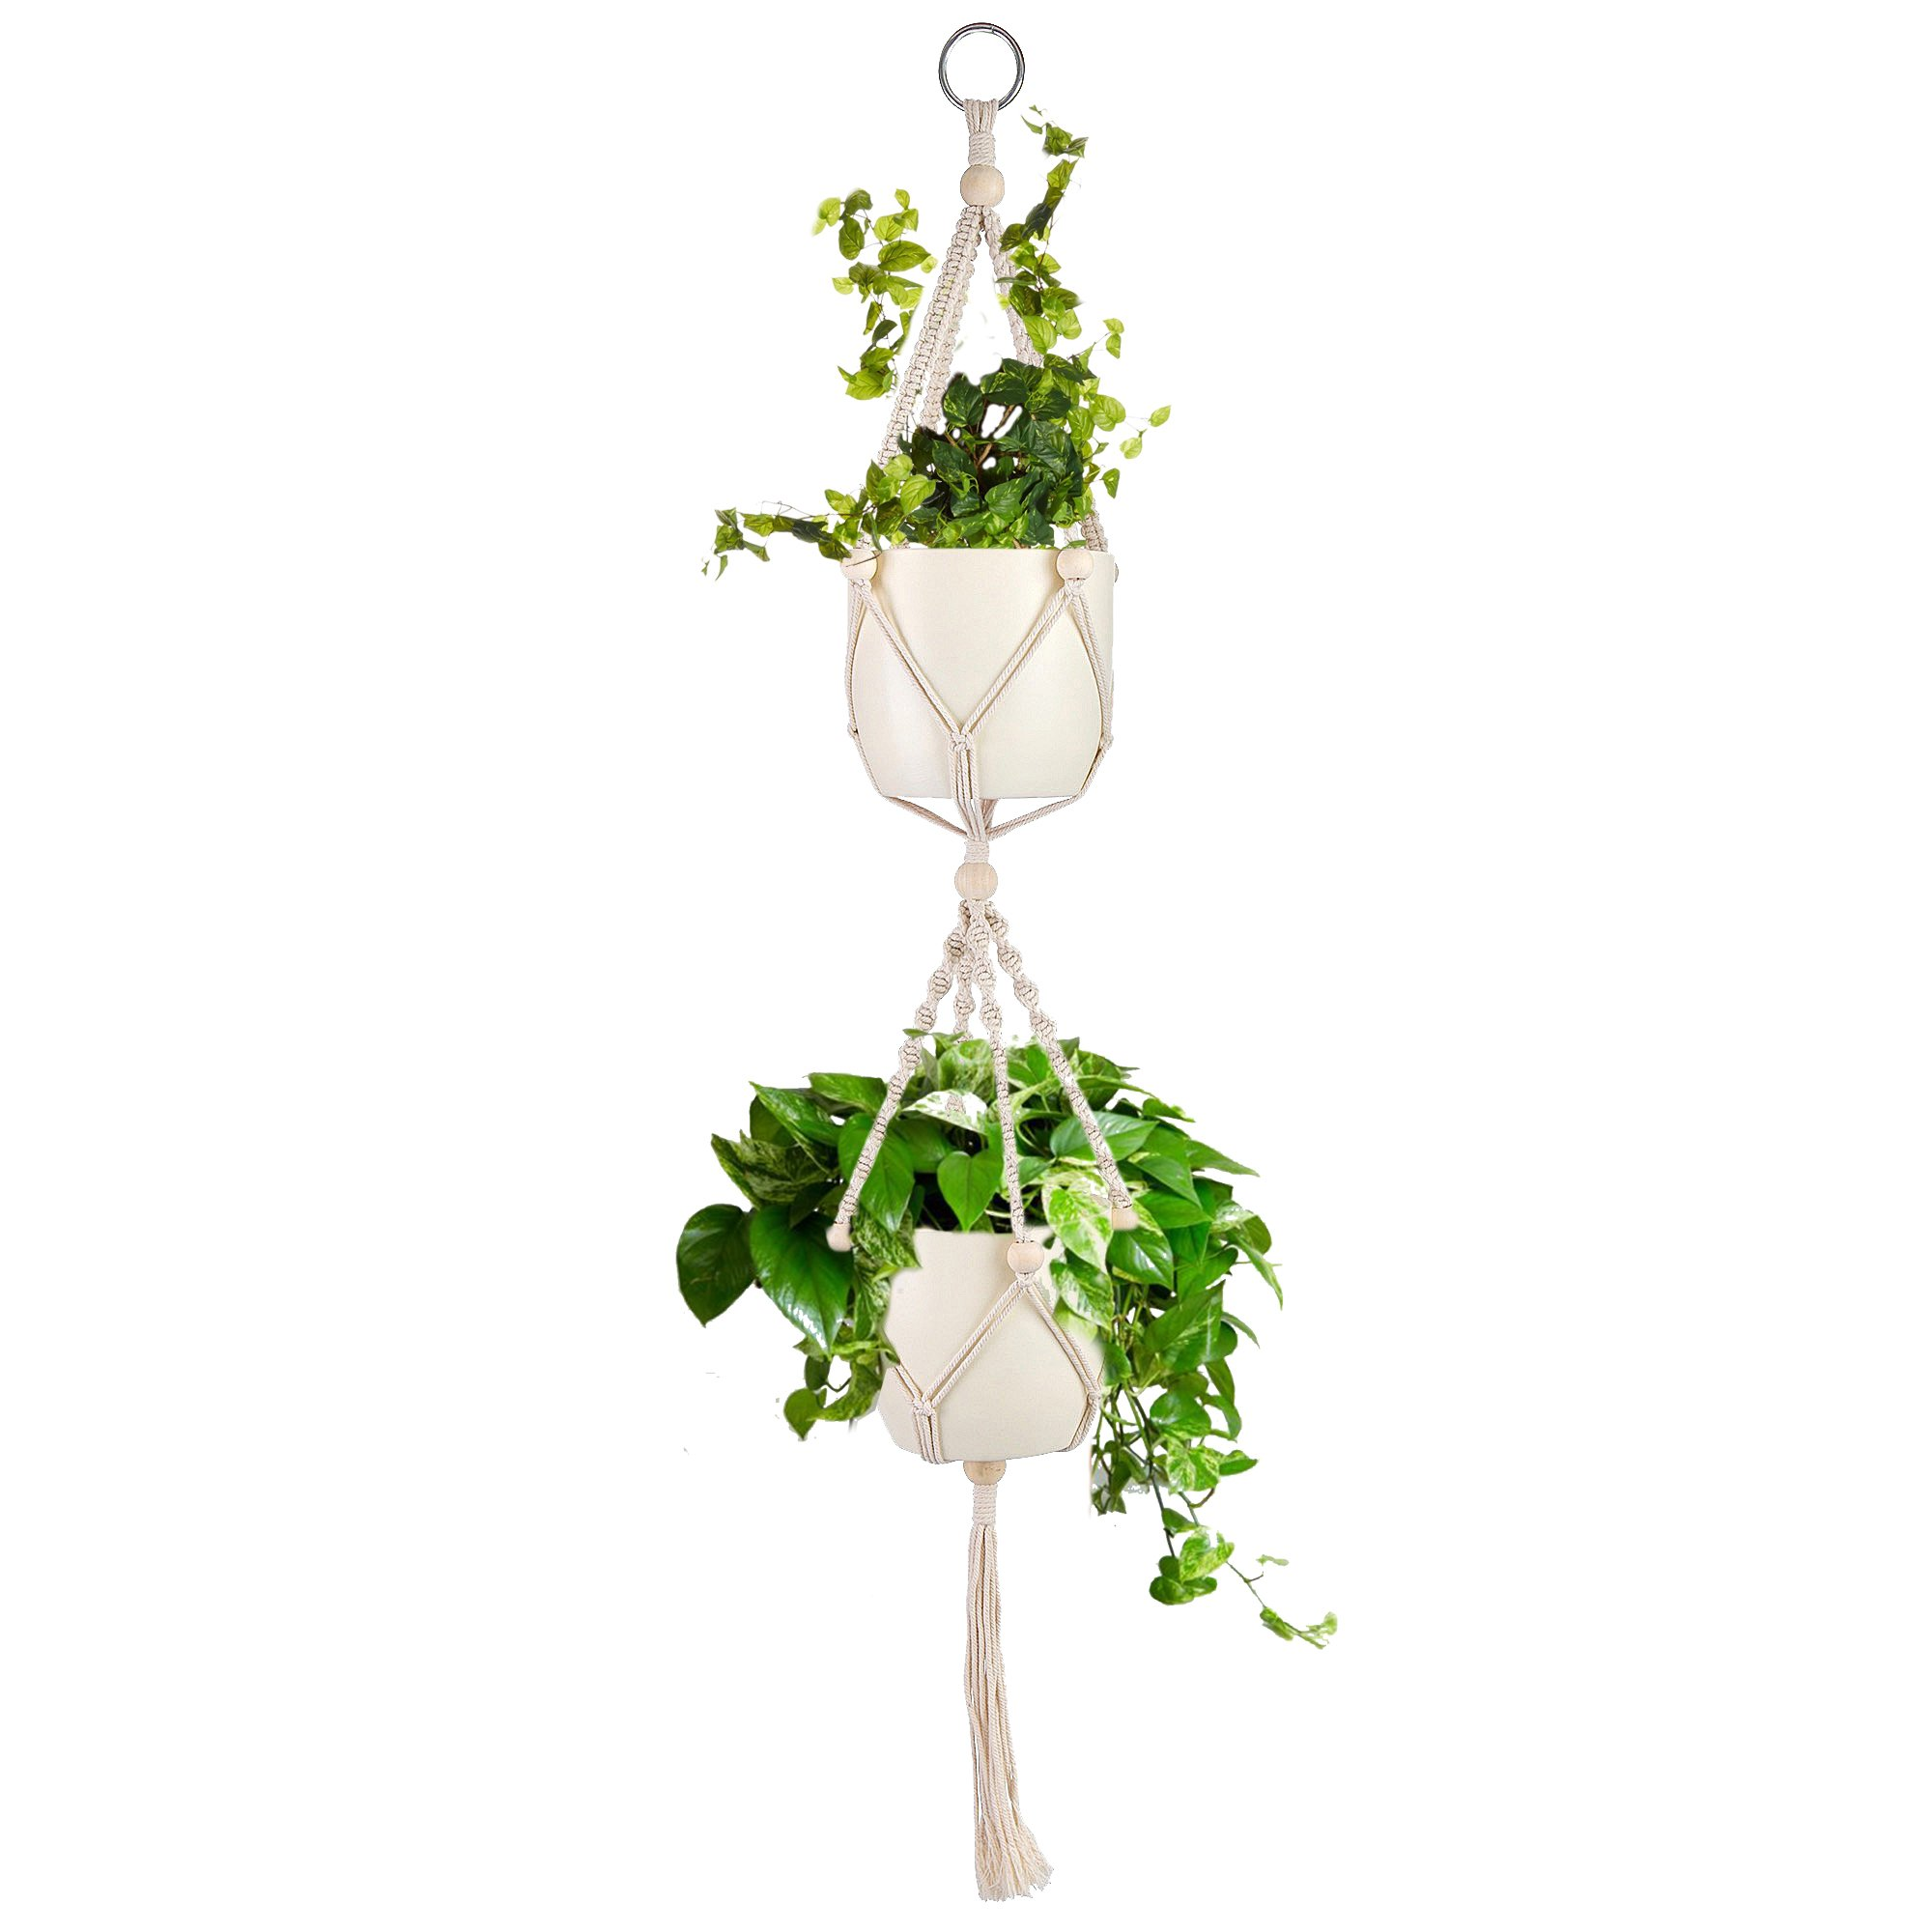 One Alpha Double Macrame Plant Hanger with Beads | Indoor & Outdoor Hanging Plant Basket | Plant Holder | 43 inches, 1.1 metres by One Alpha